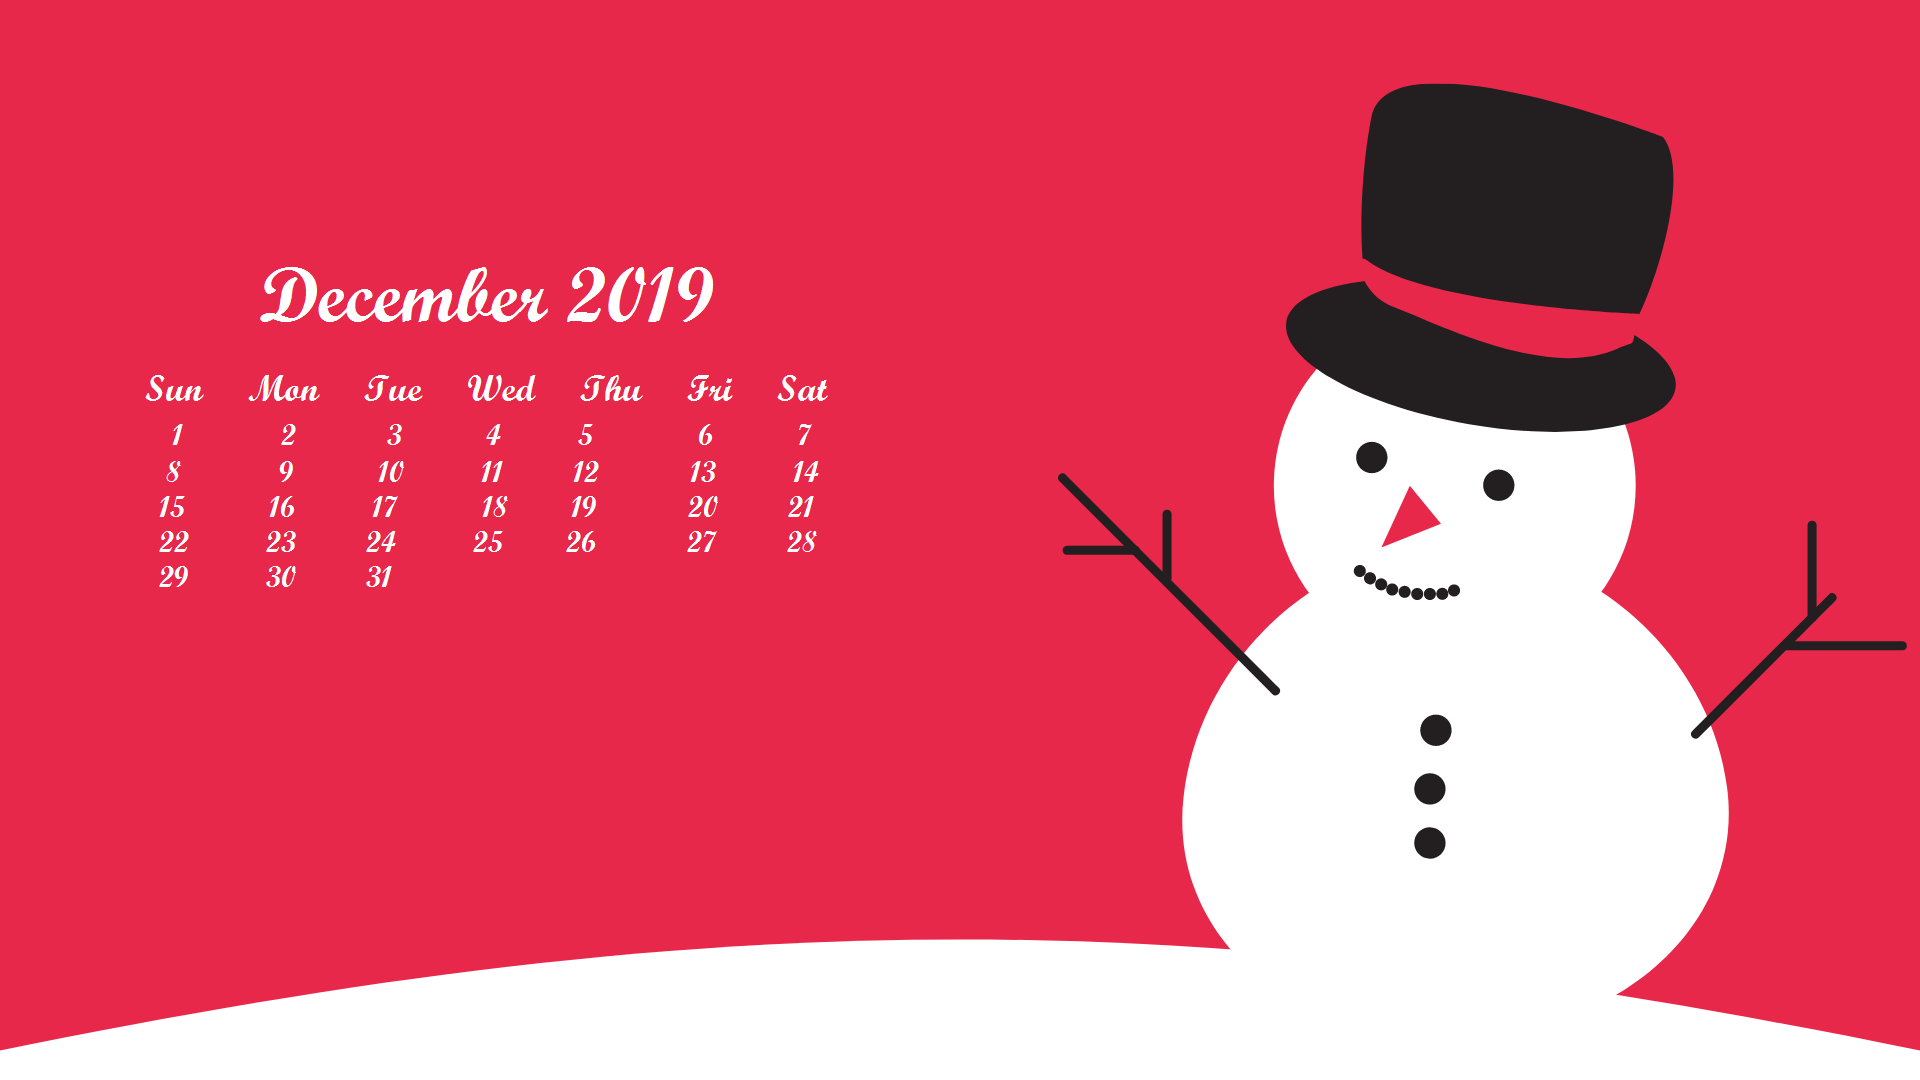 Desktop Calendar Wallpaper December 2019 December 2019 Desktop Wallpaper With Calendar | Desk Calendar in